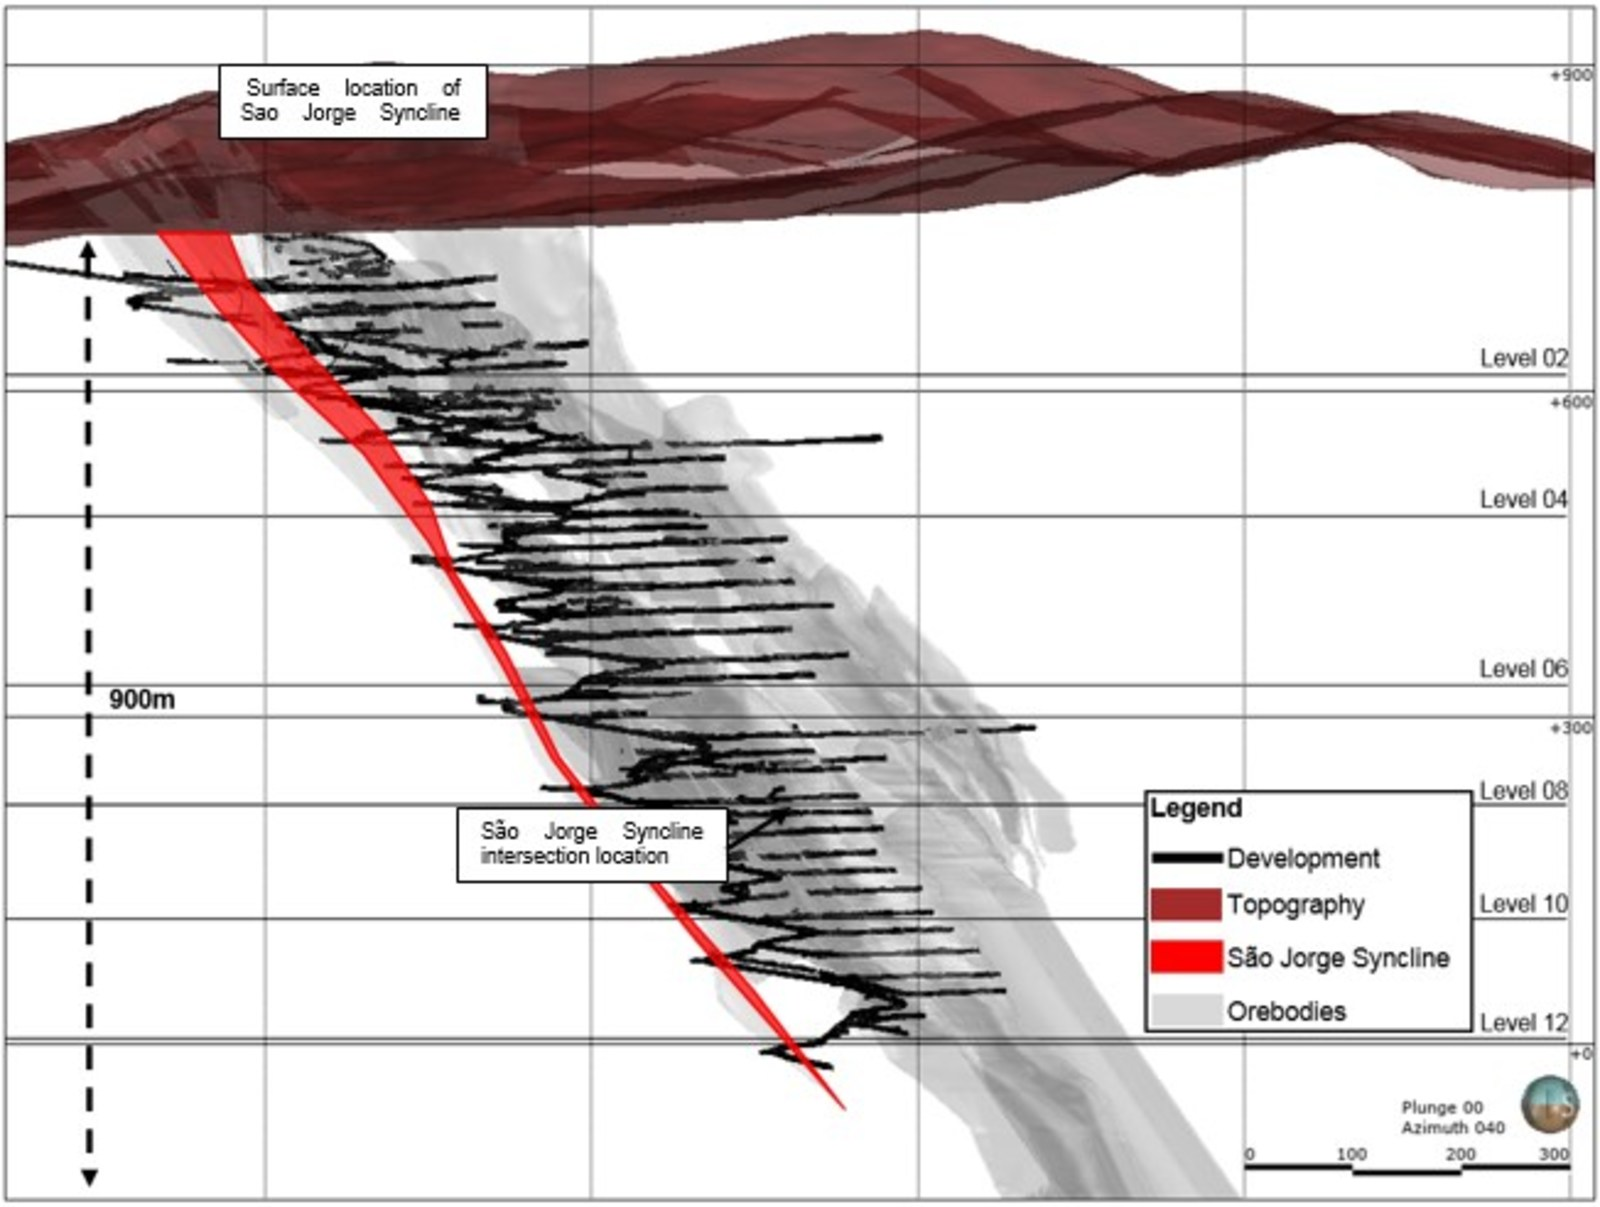 Figure 2. Pilar Long Section showing location of Sao Jorge Syncline at surface and close to 13 level where it was intersected by development relative to the BIF Orebodies.